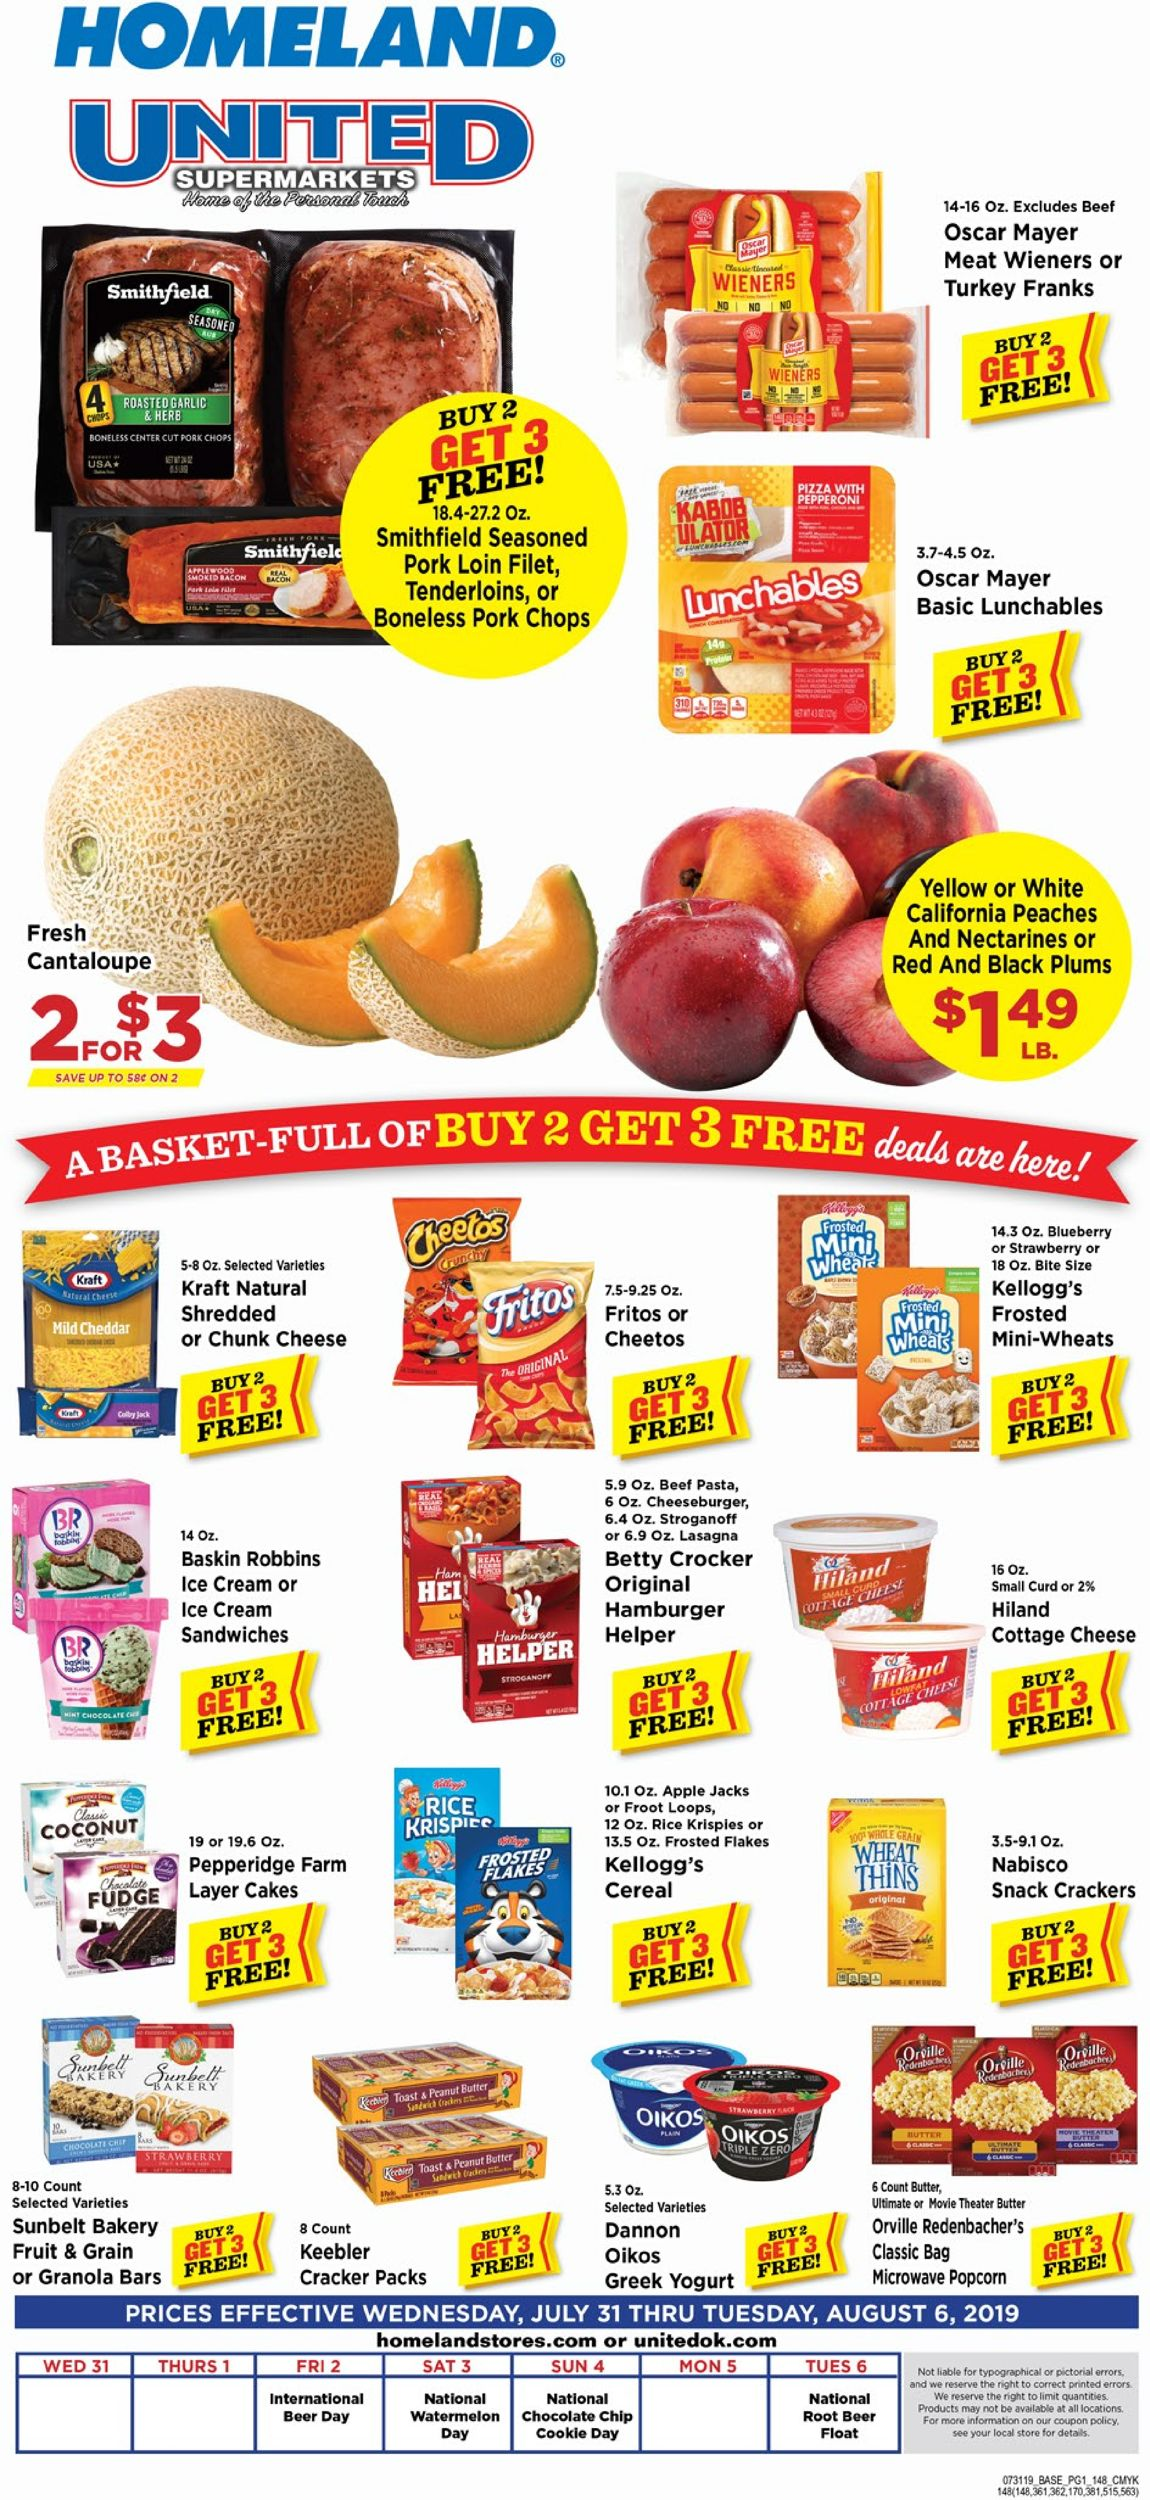 Homeland Current weekly ad 07/31 - 08